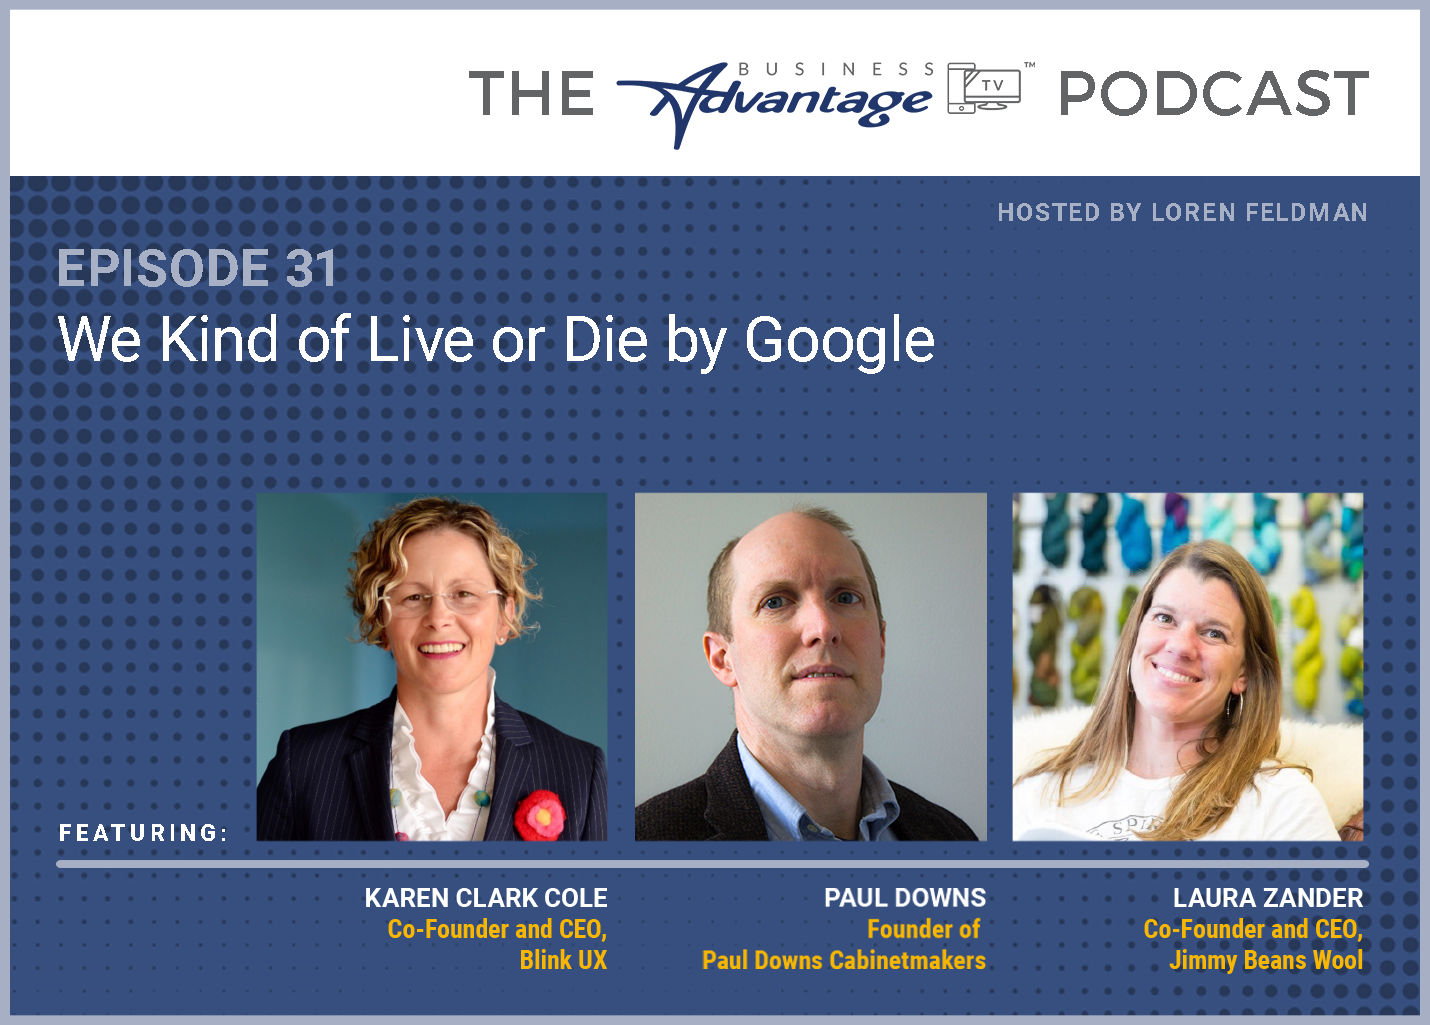 Episode 31: We Kind of Live or Die by Google